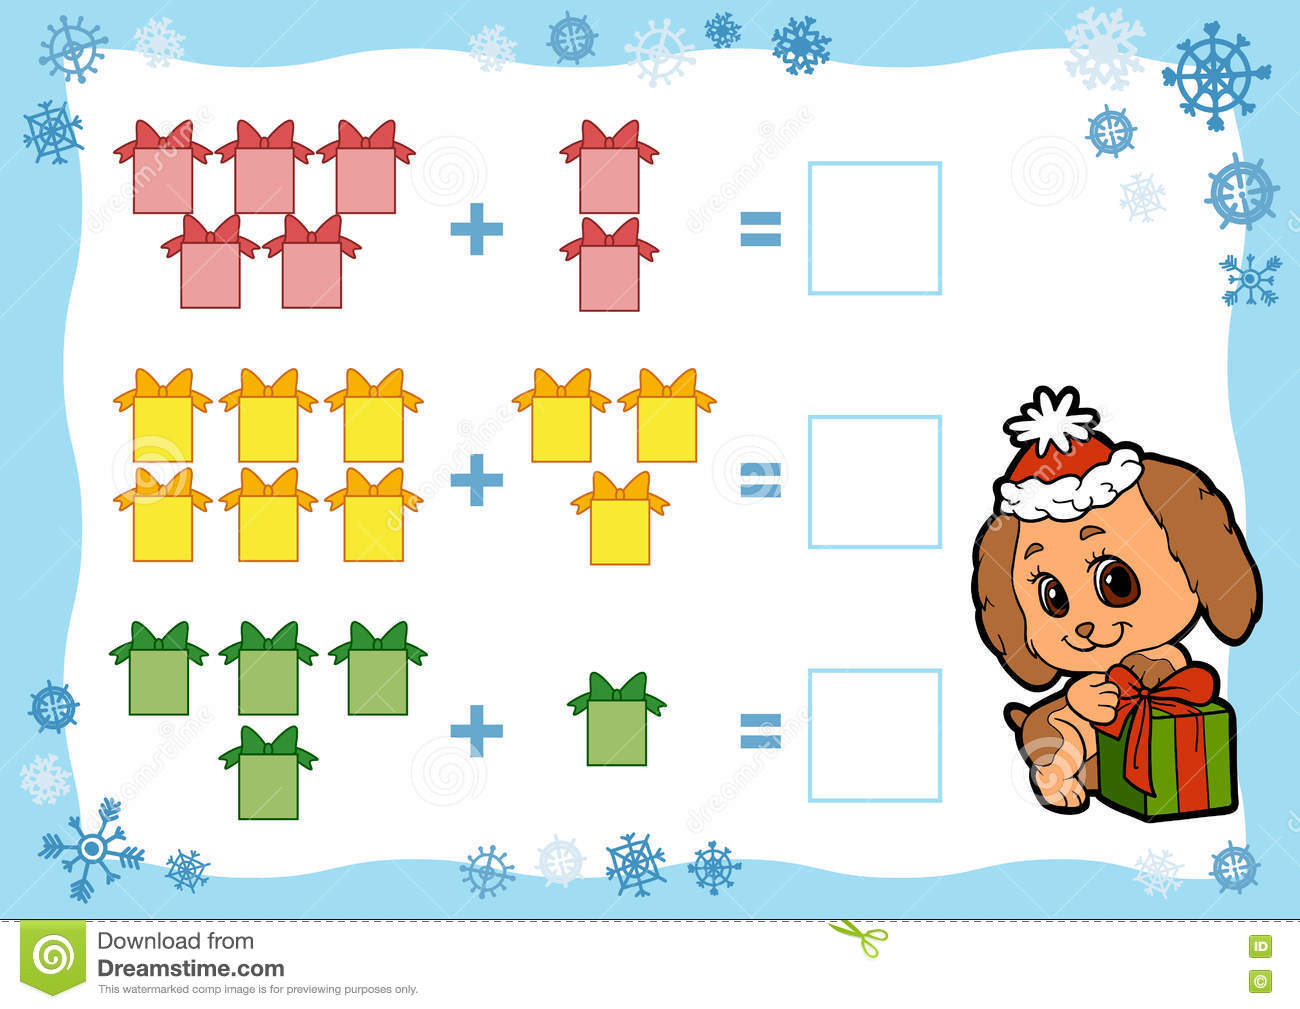 Counting Game For Children Addition Worksheets Christmas Ts Stock Vector